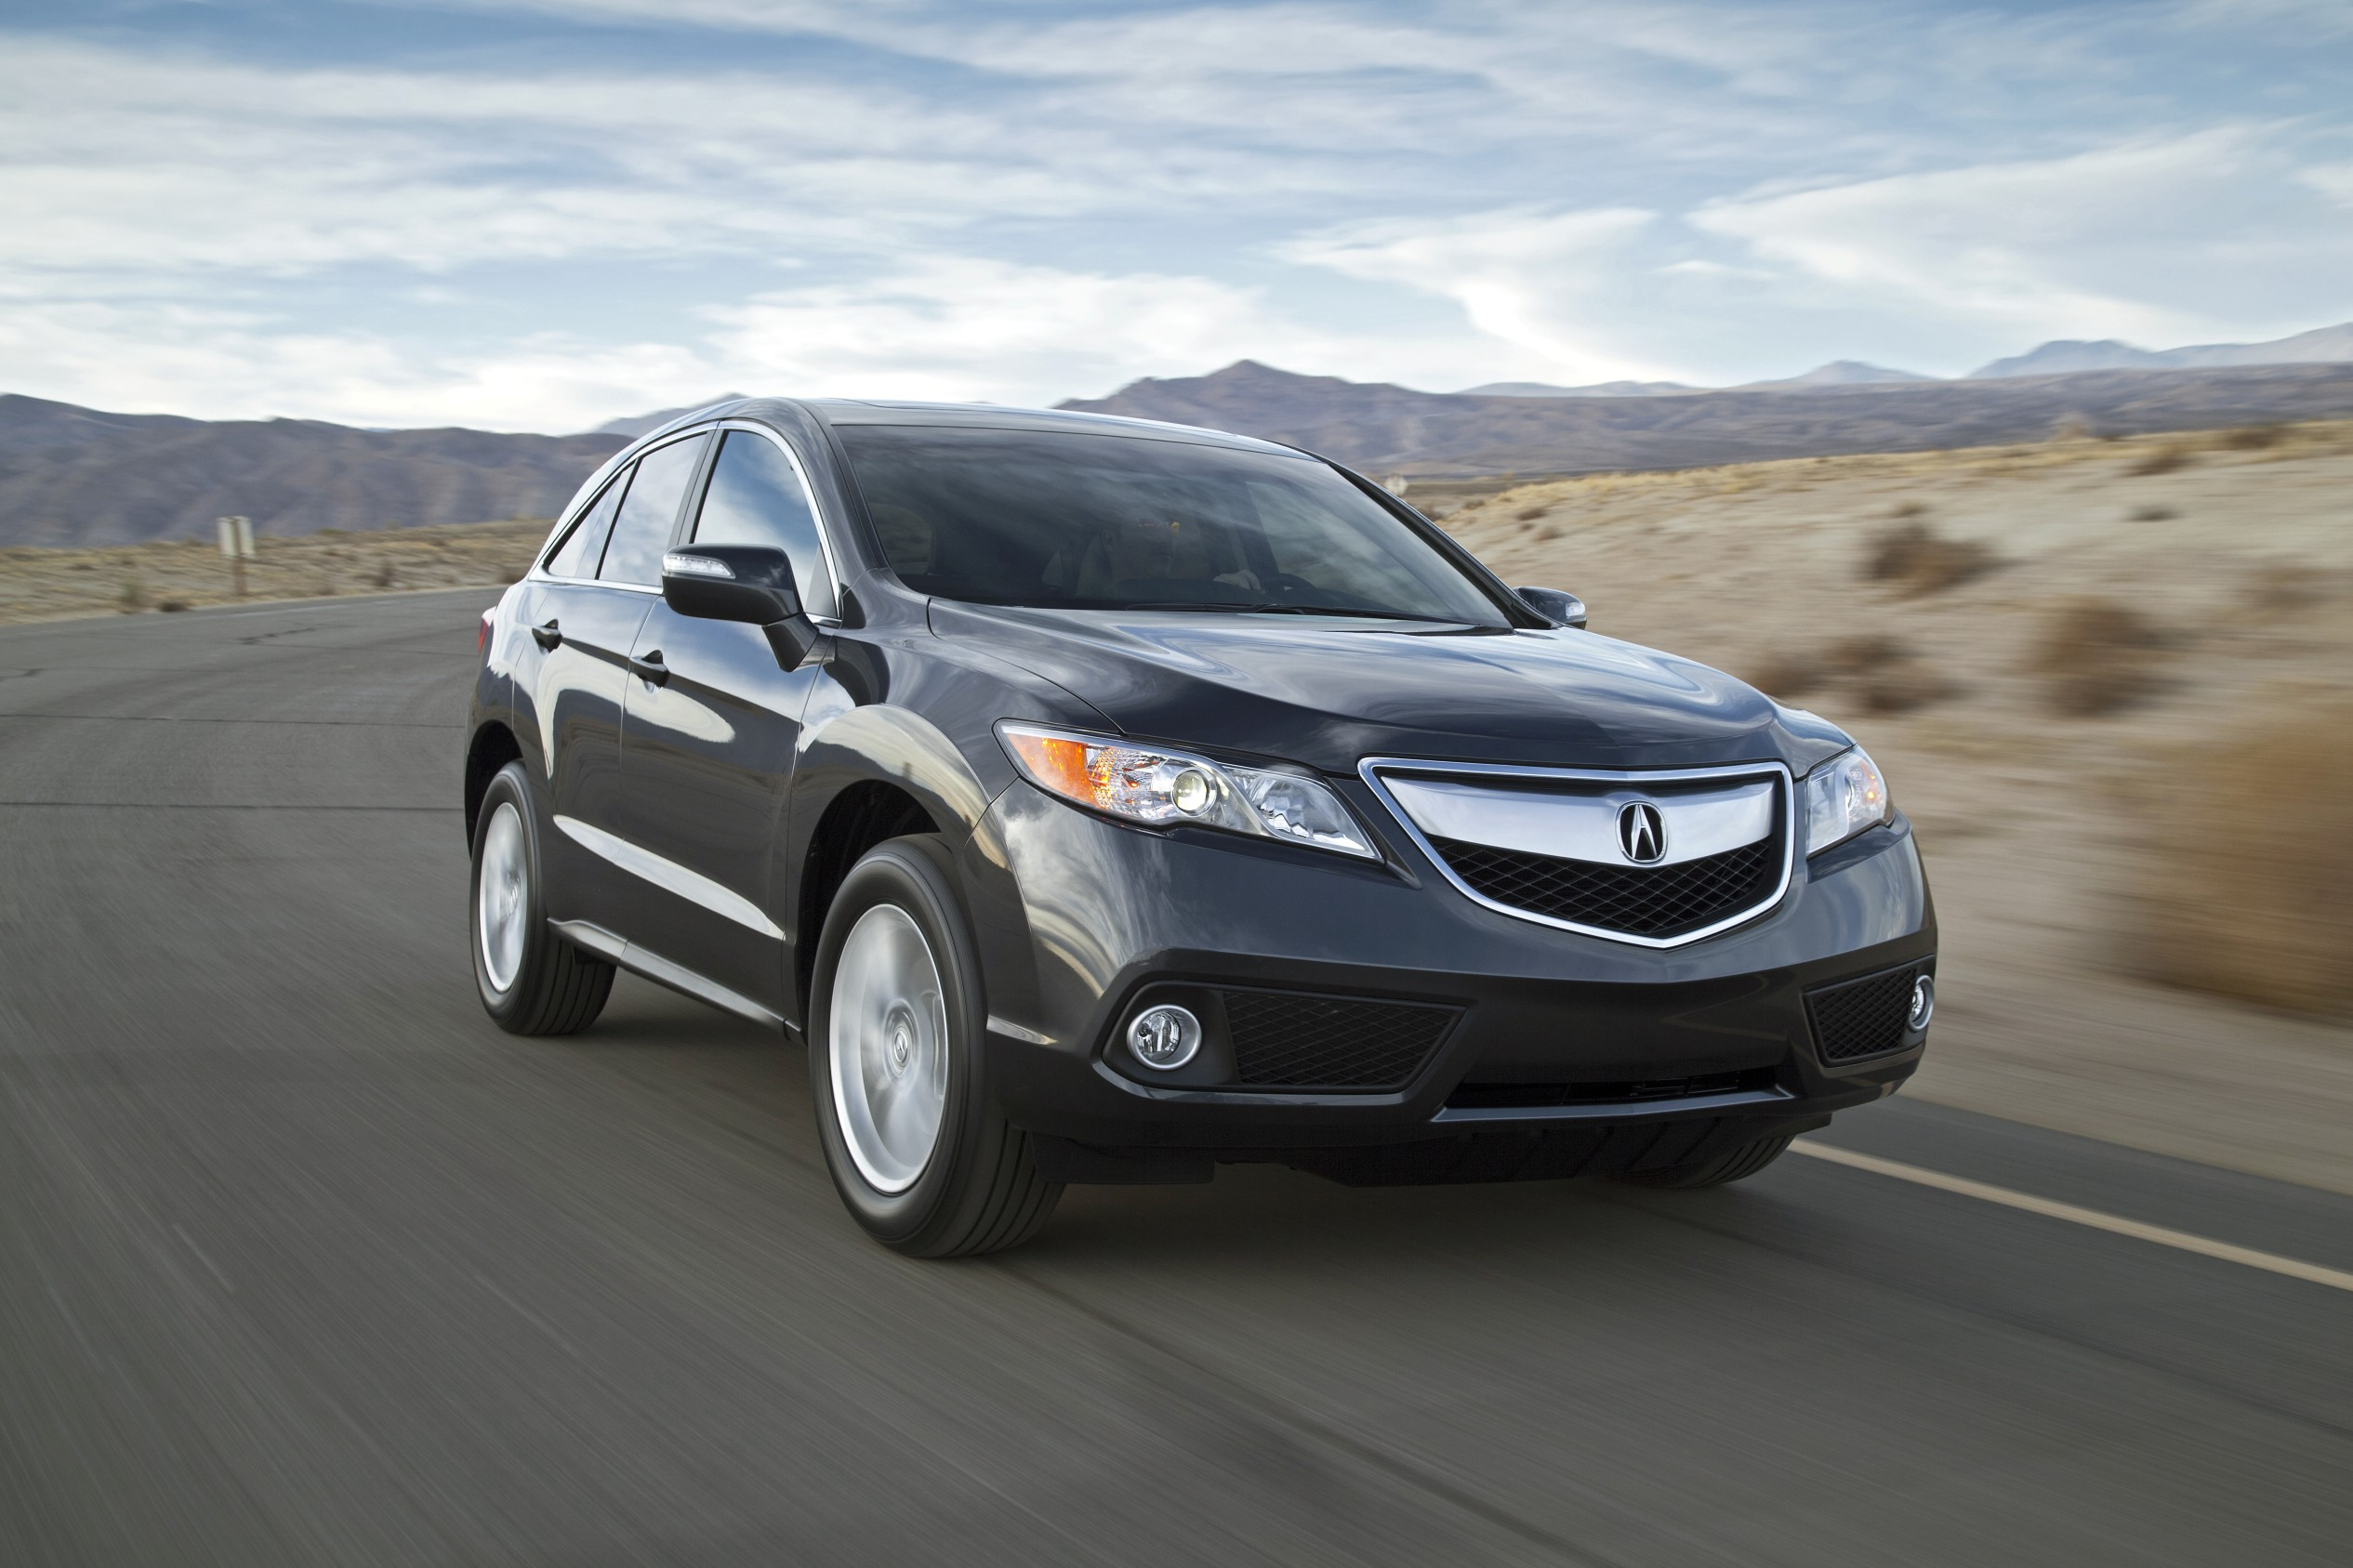 photos acura specs dates net carscool release rdx review